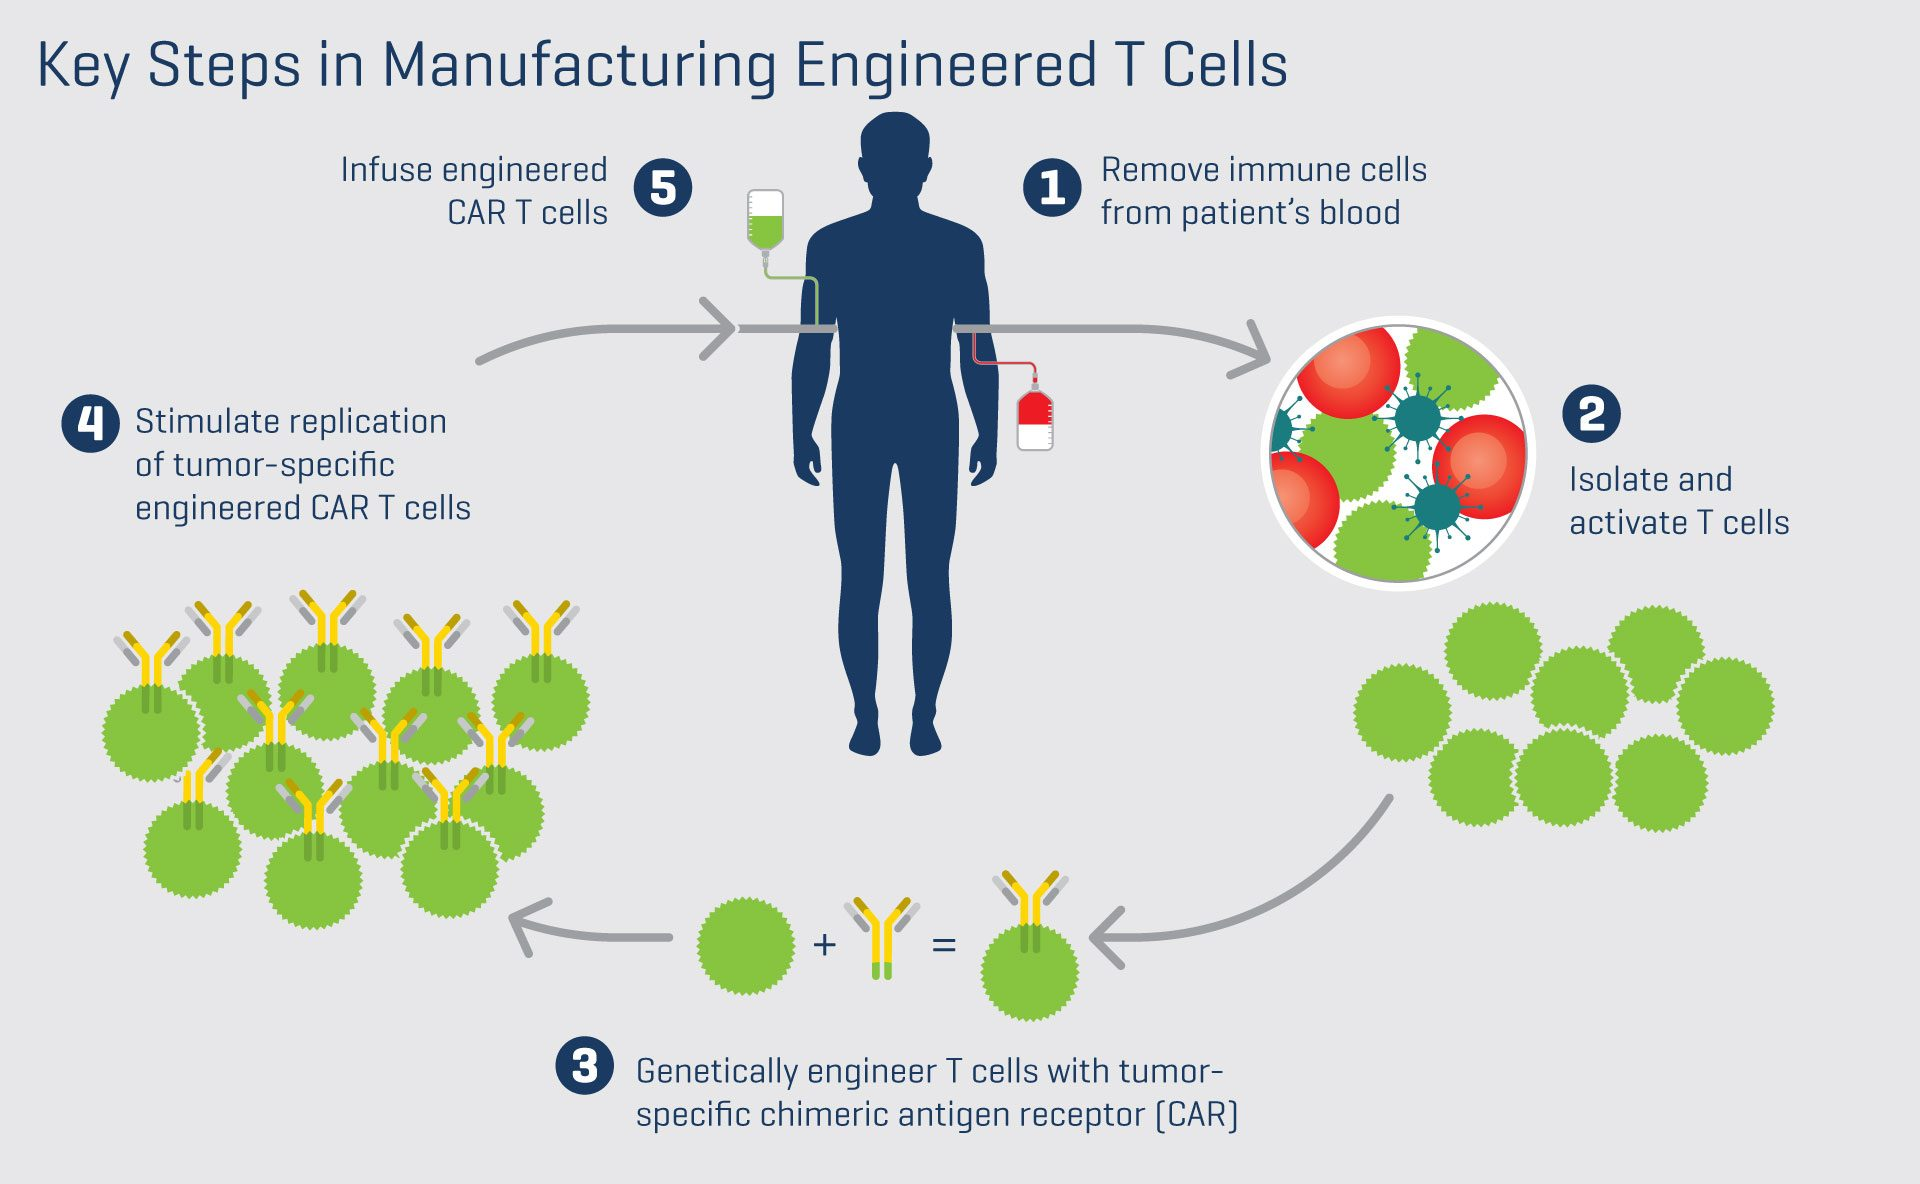 Key steps of manufacturing engineered T cells